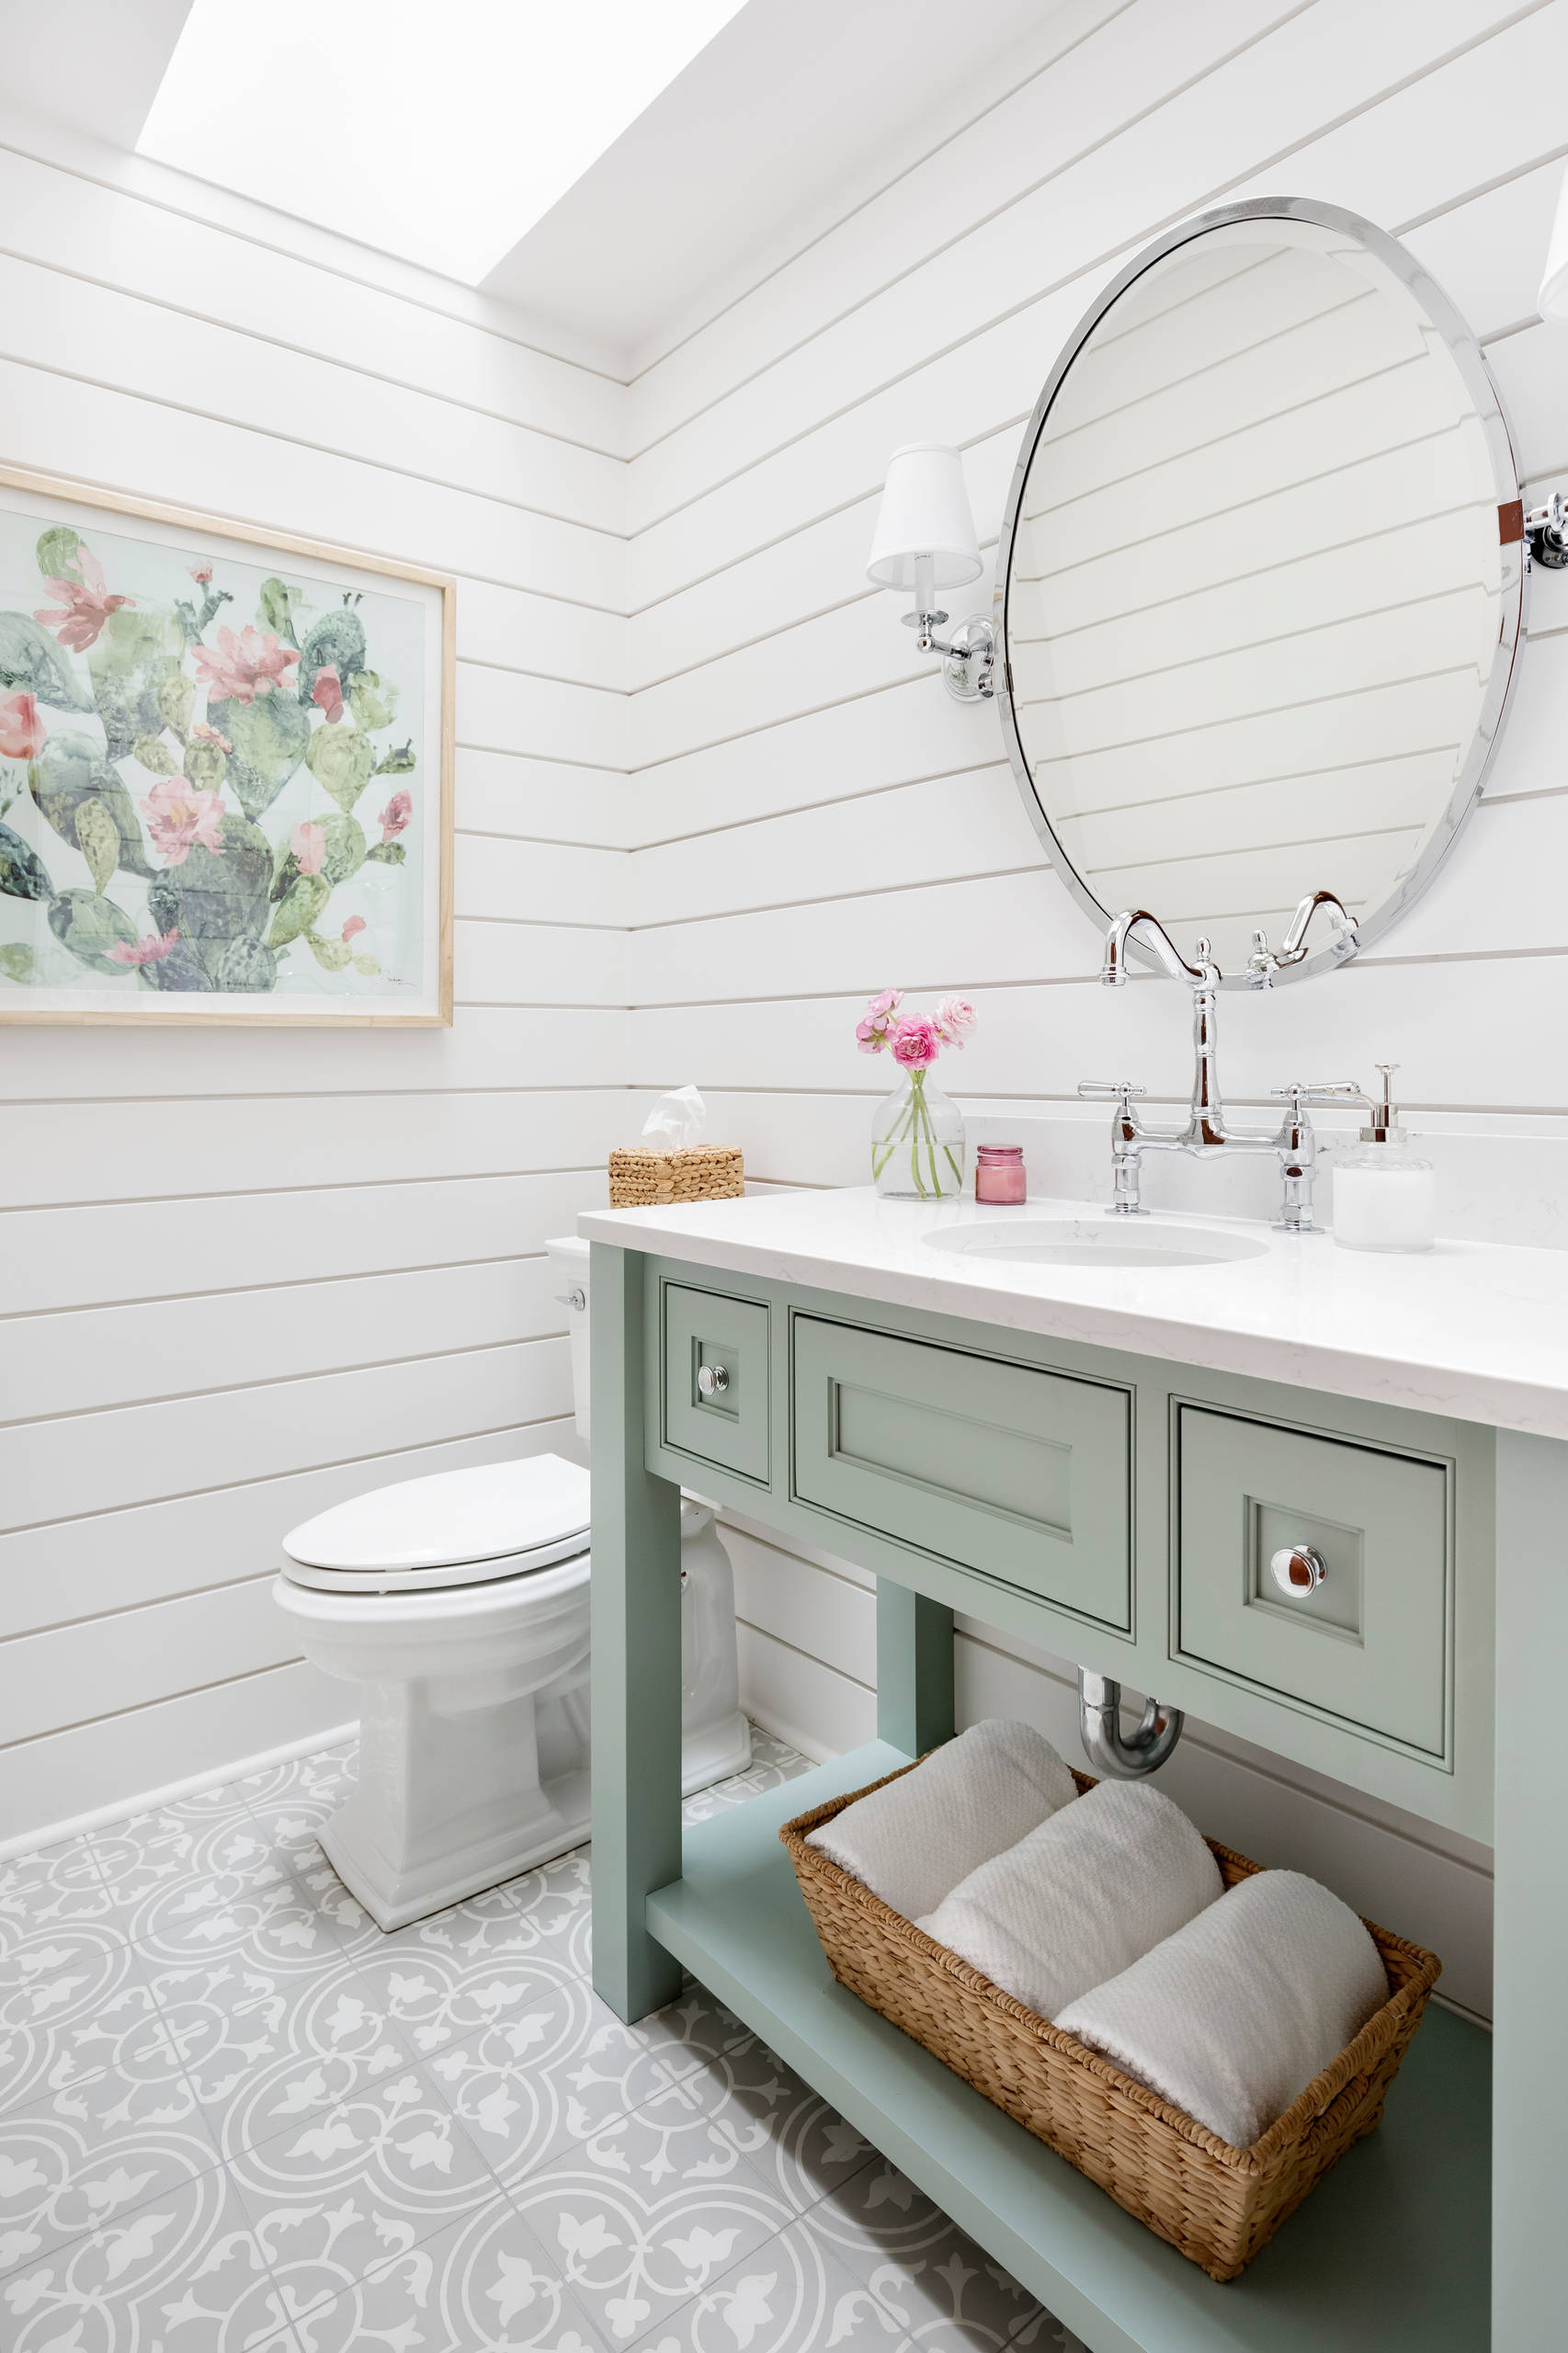 75 Beautiful Powder Room Pictures Ideas May 2021 Houzz